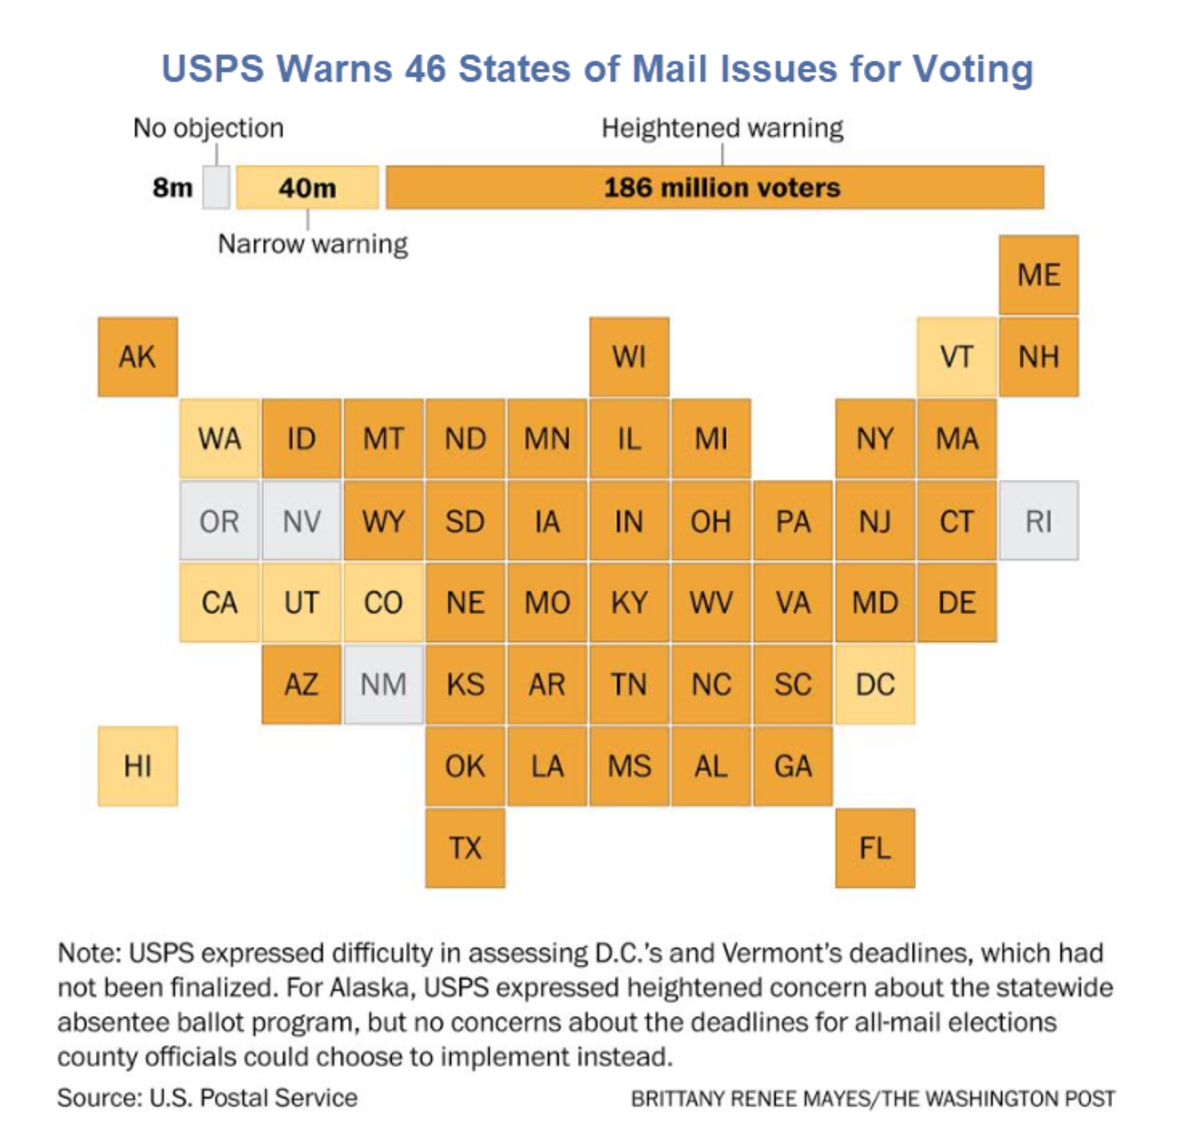 USPS Warns 46 States of Mail Issues for Voting